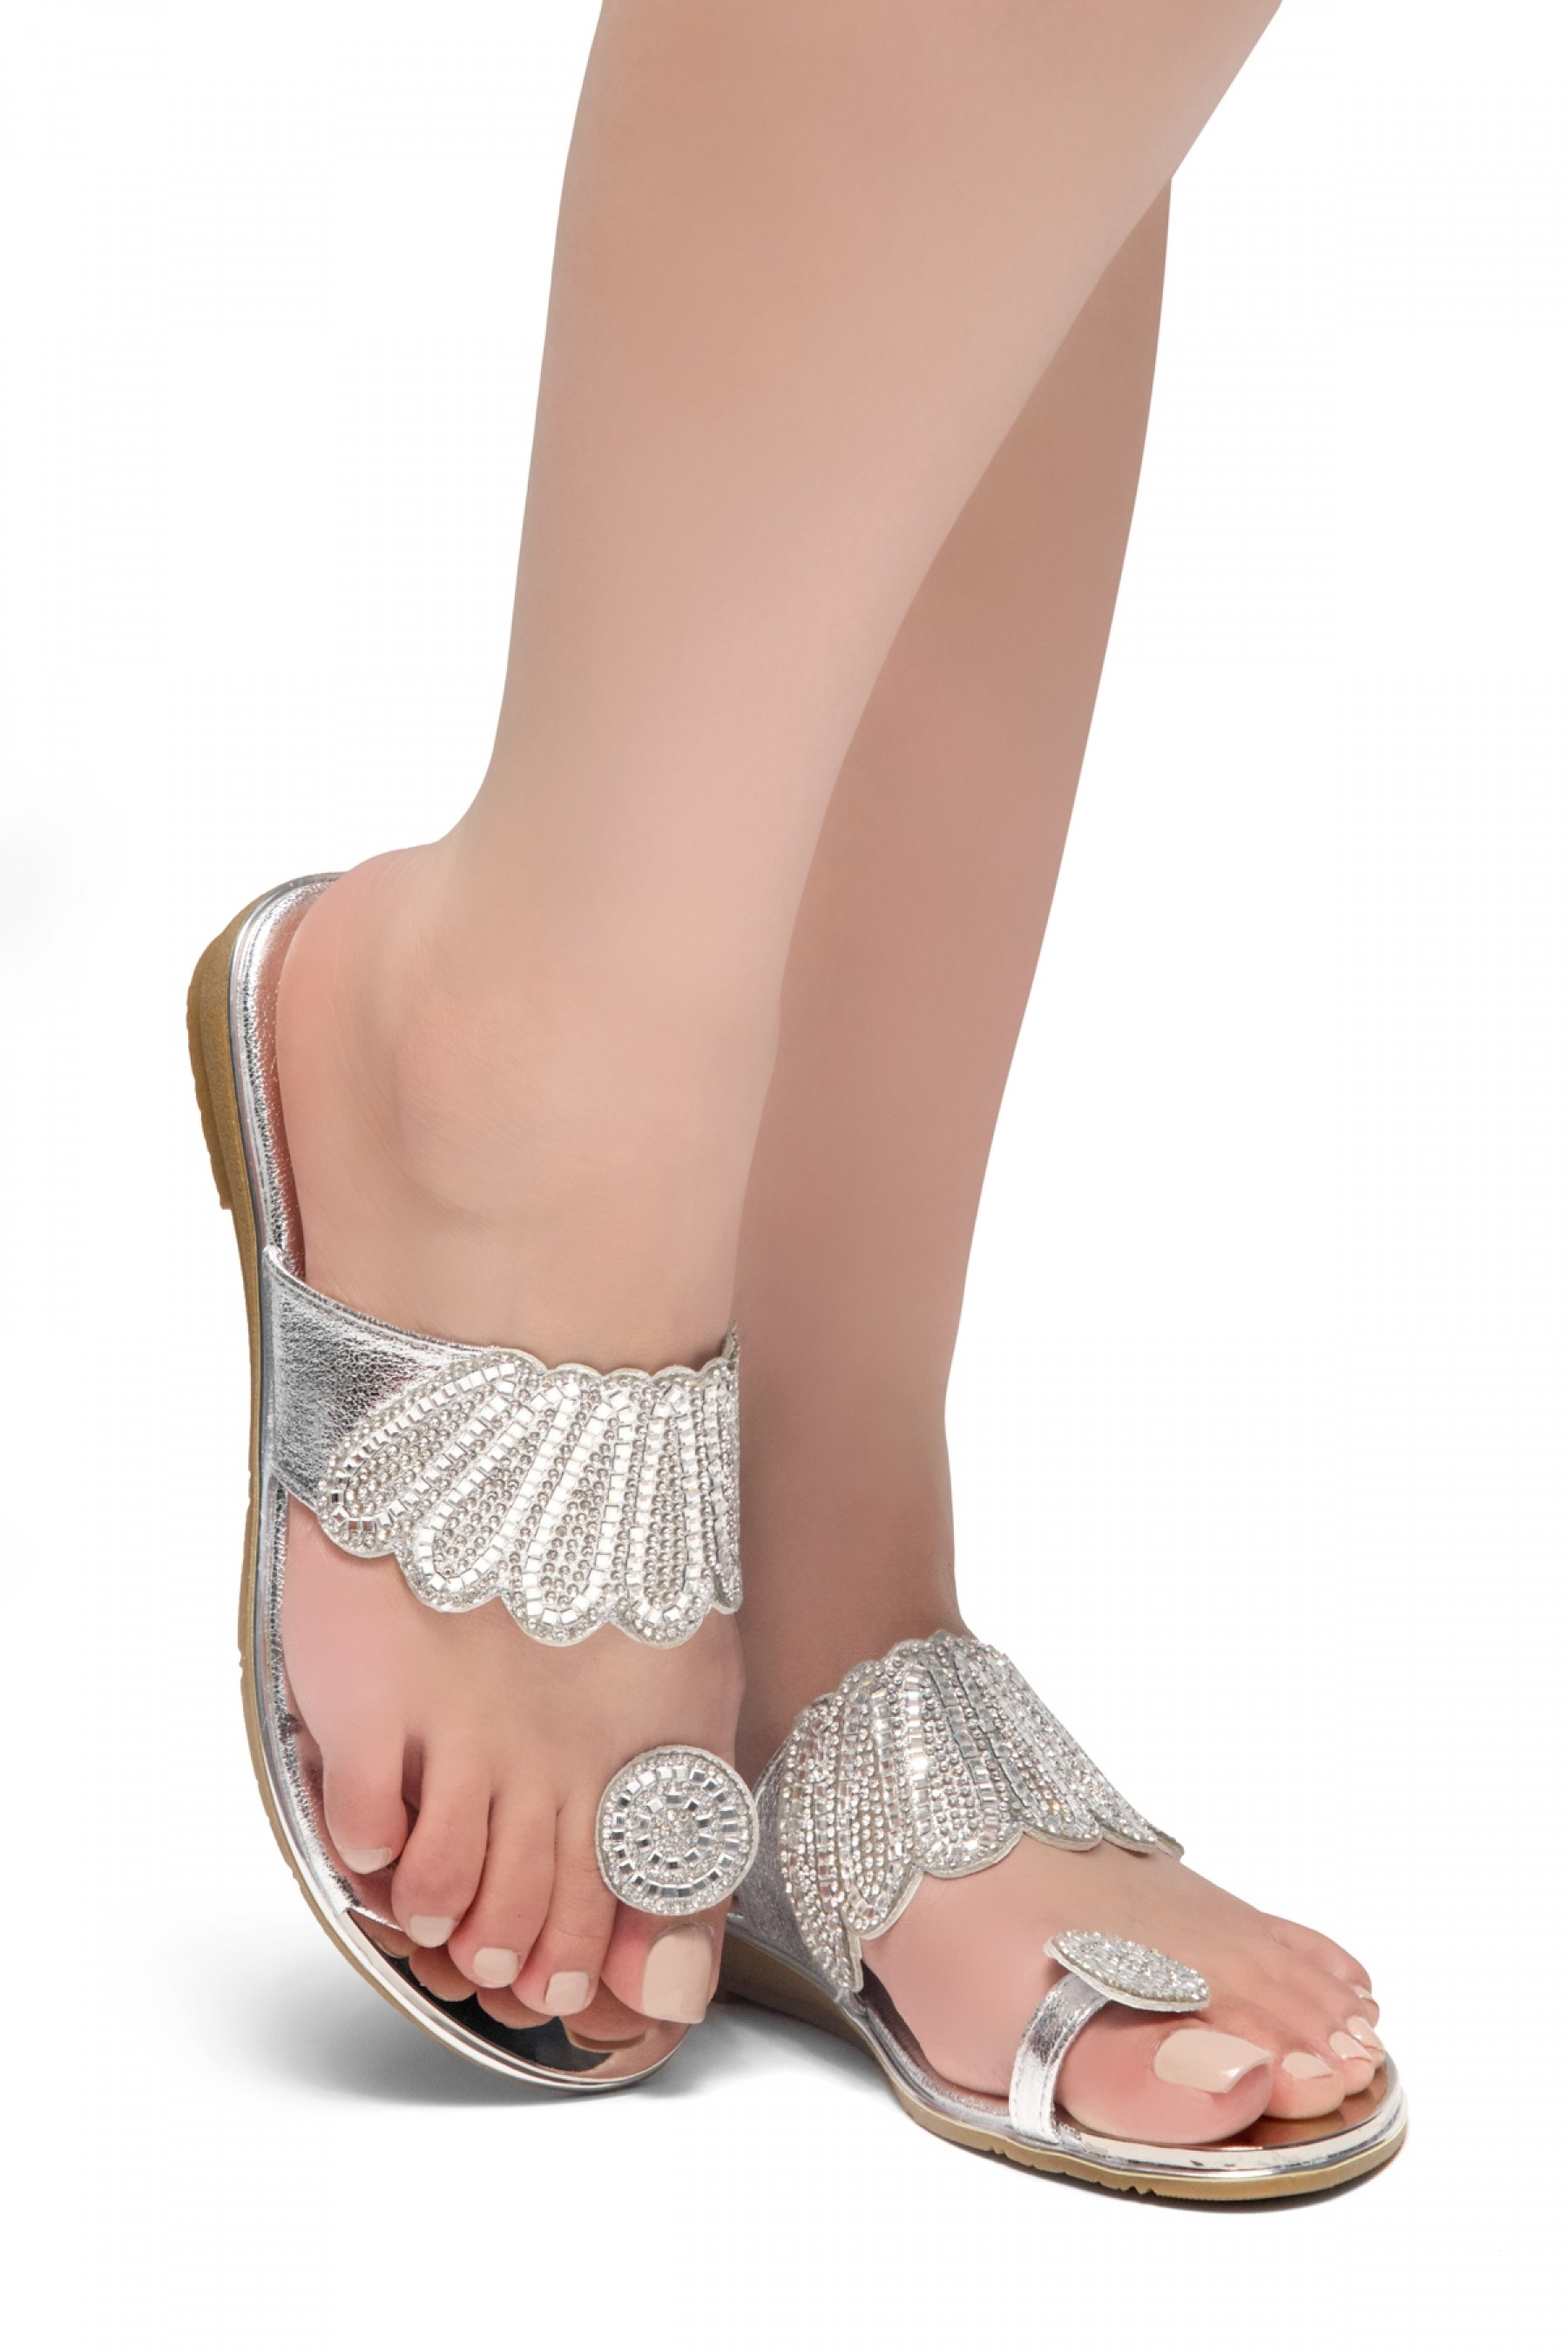 HerStyle SHOWSTOPPER- Toe Ring with blink blink jeweled embellishment vamp, open toe sandals (Silver)